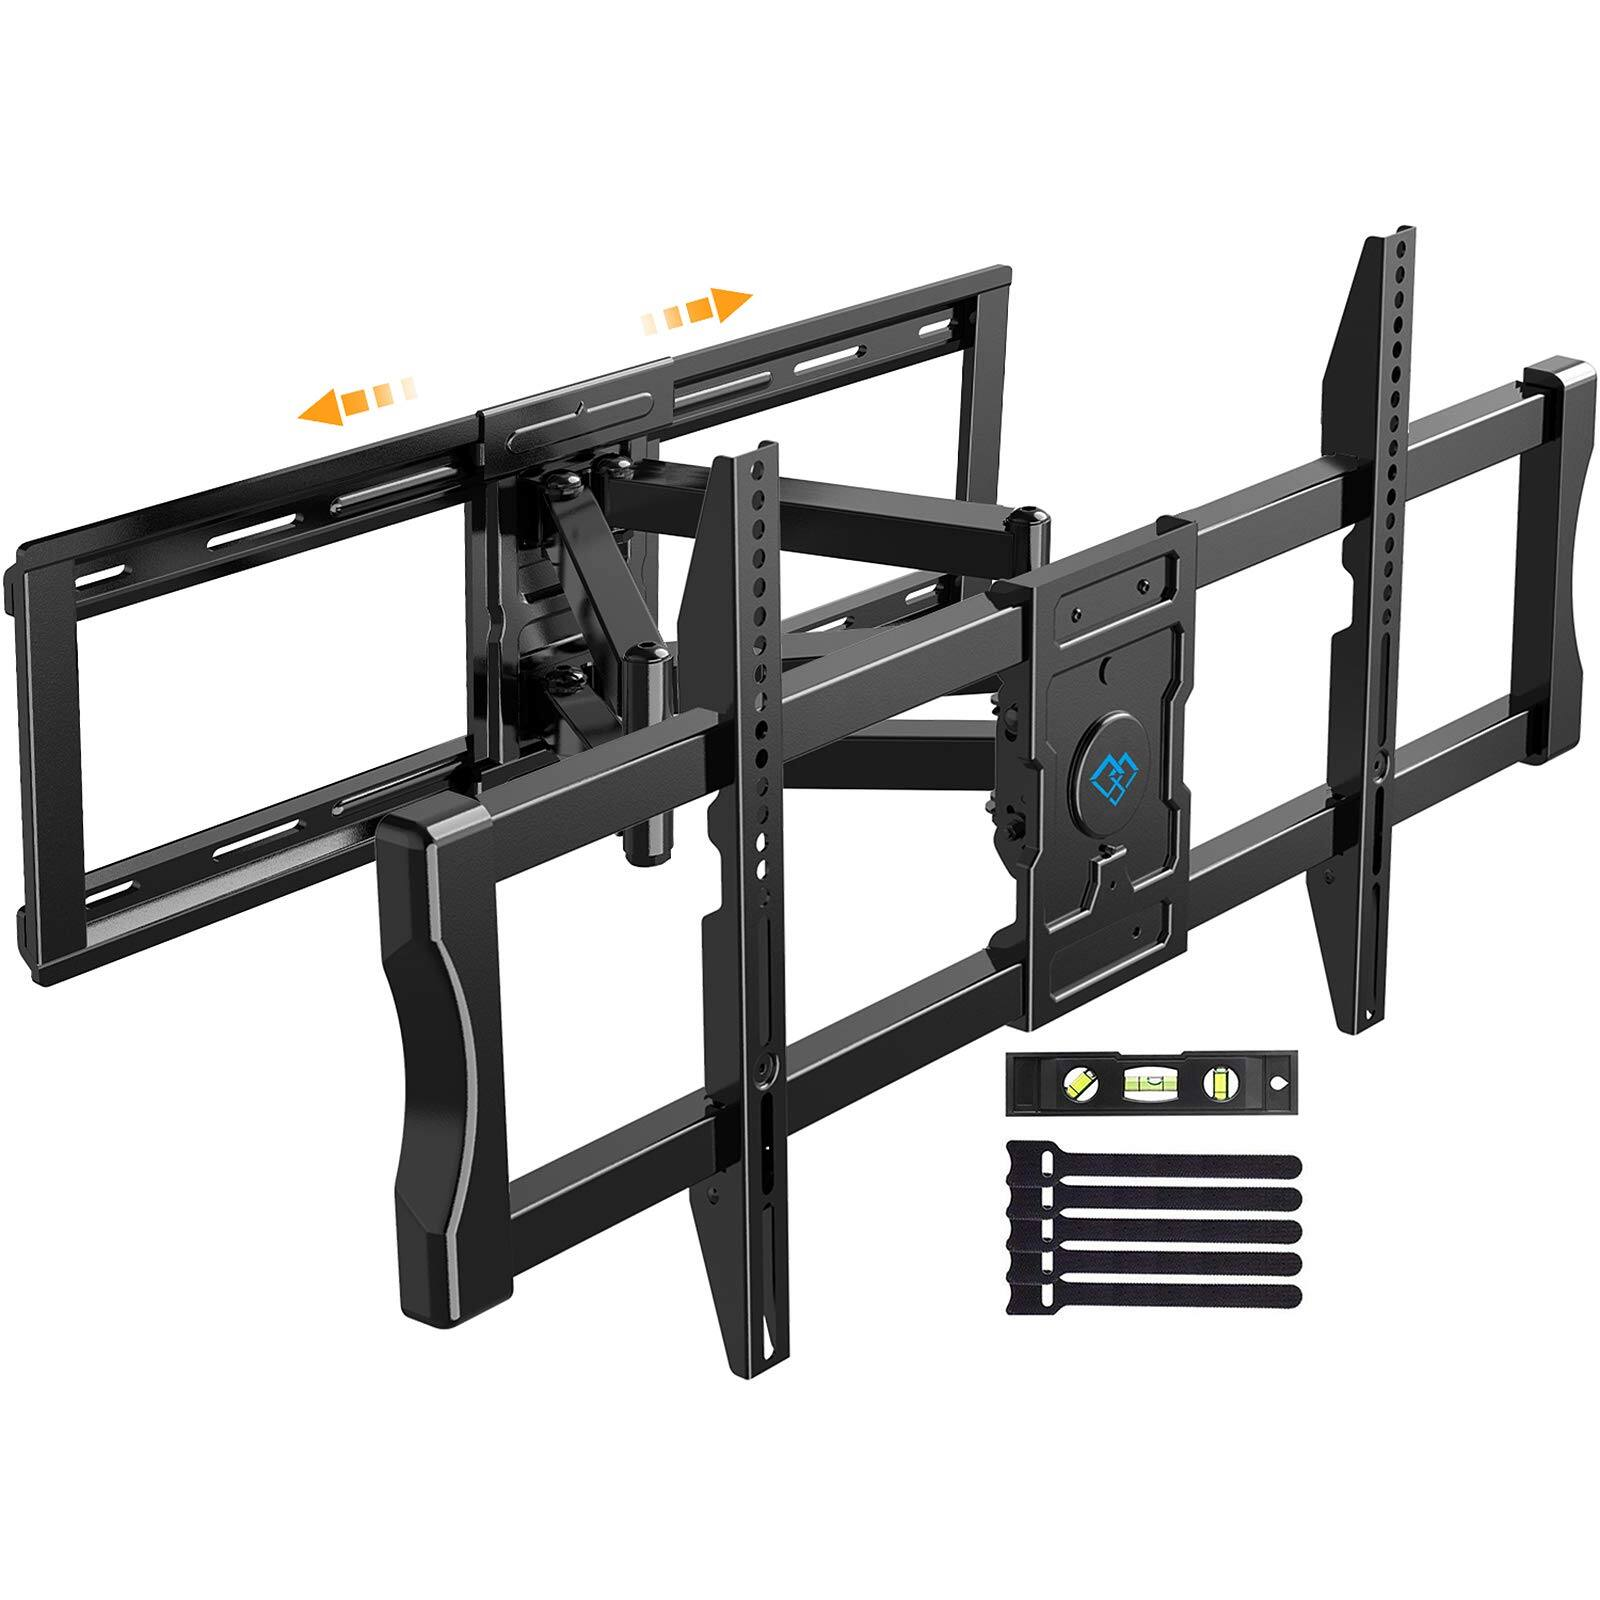 PERLESMITH Full Motion TV Wall Mount for 37-95 Inch only $69.99 + FS with PRIME